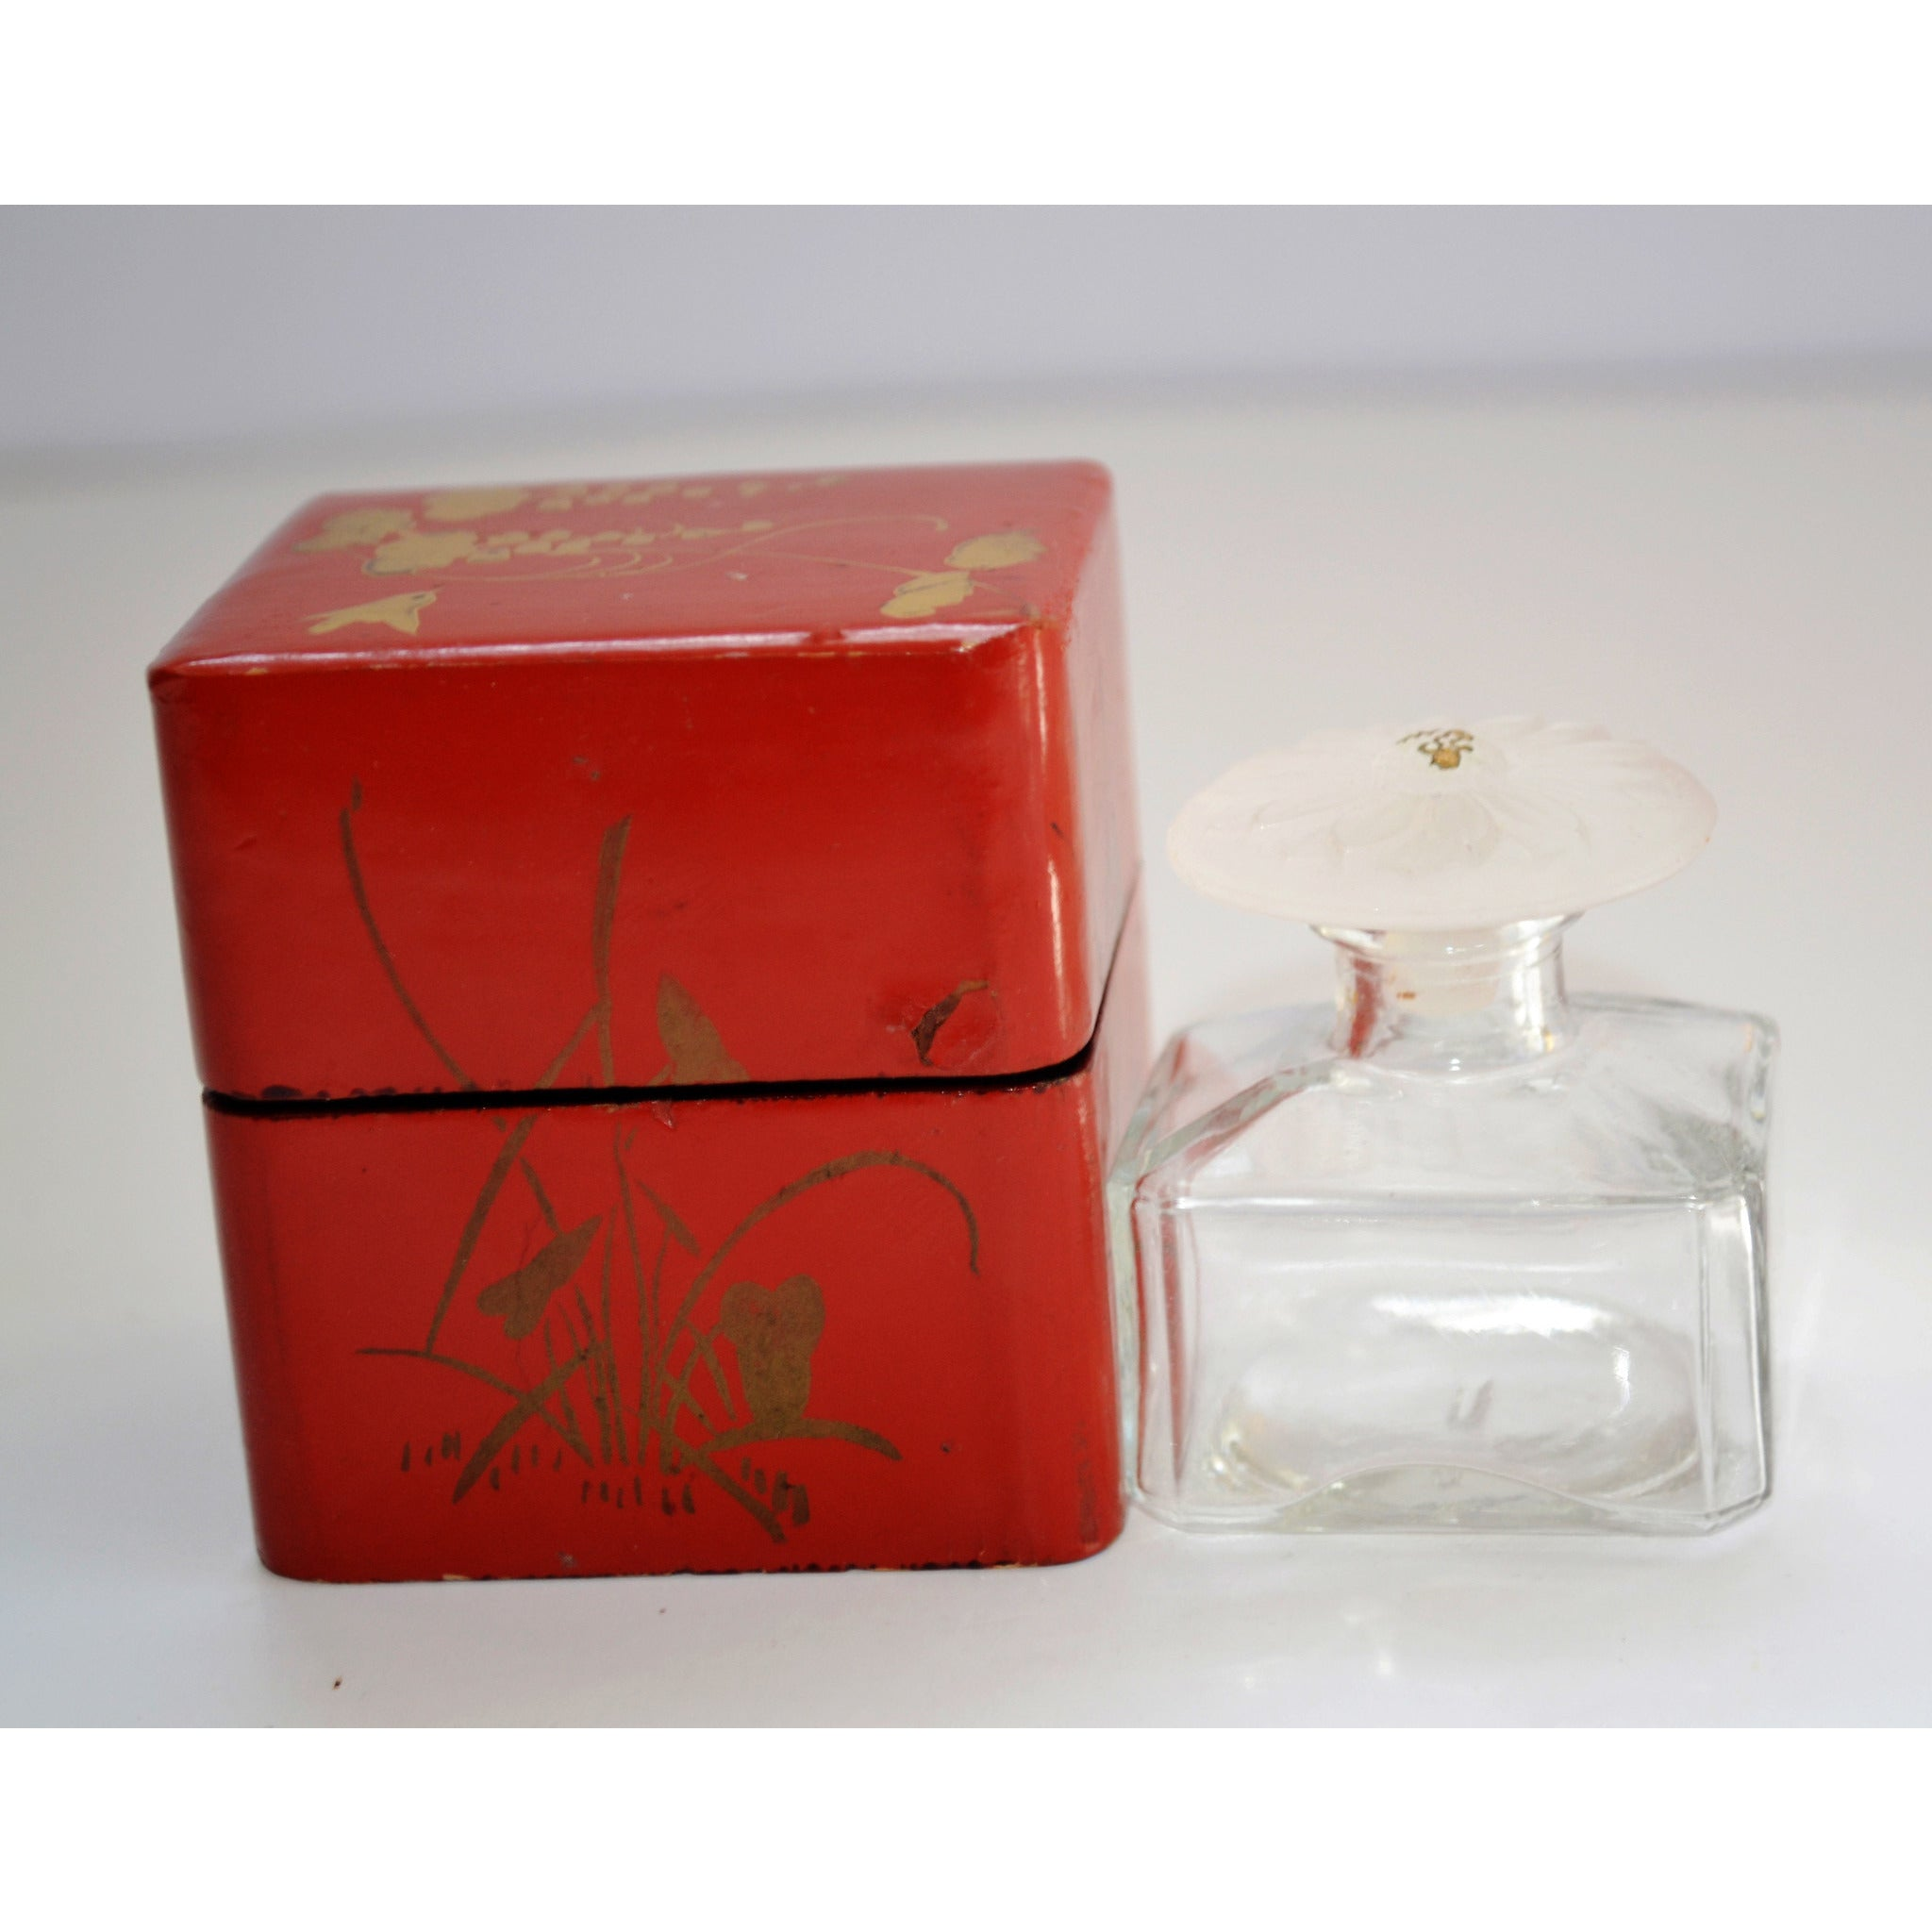 Vintage Vantine's Perfume Bottle & Laquered Box